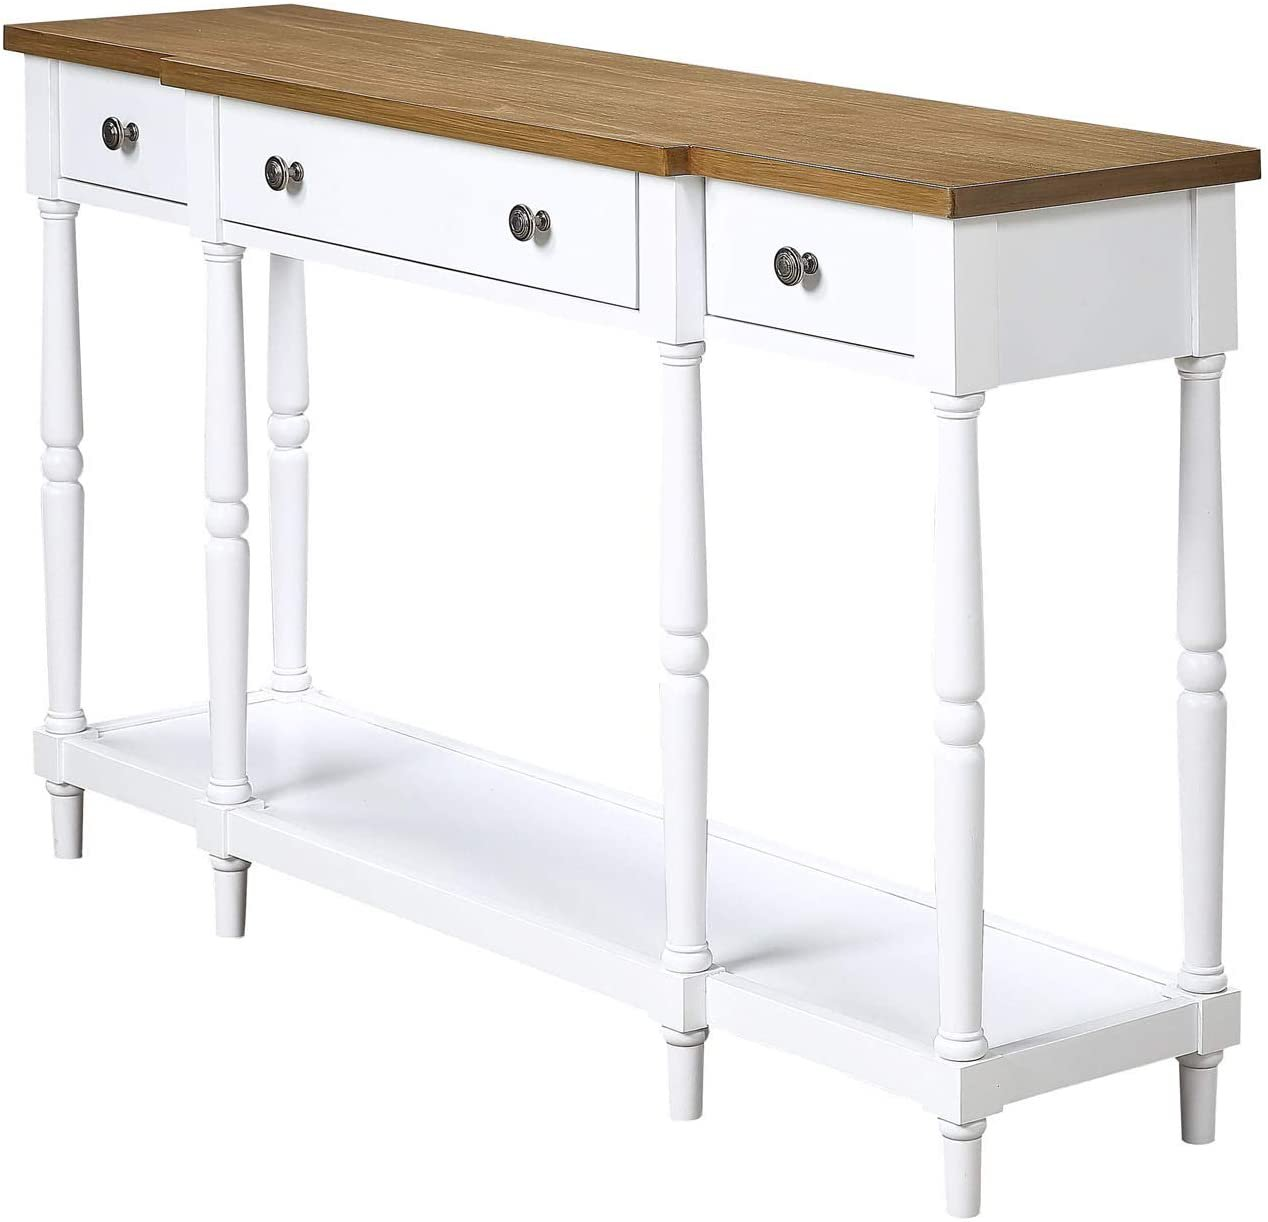 Convenience Concepts Cheyenne Console Table, Driftwood / White Driftwood / White